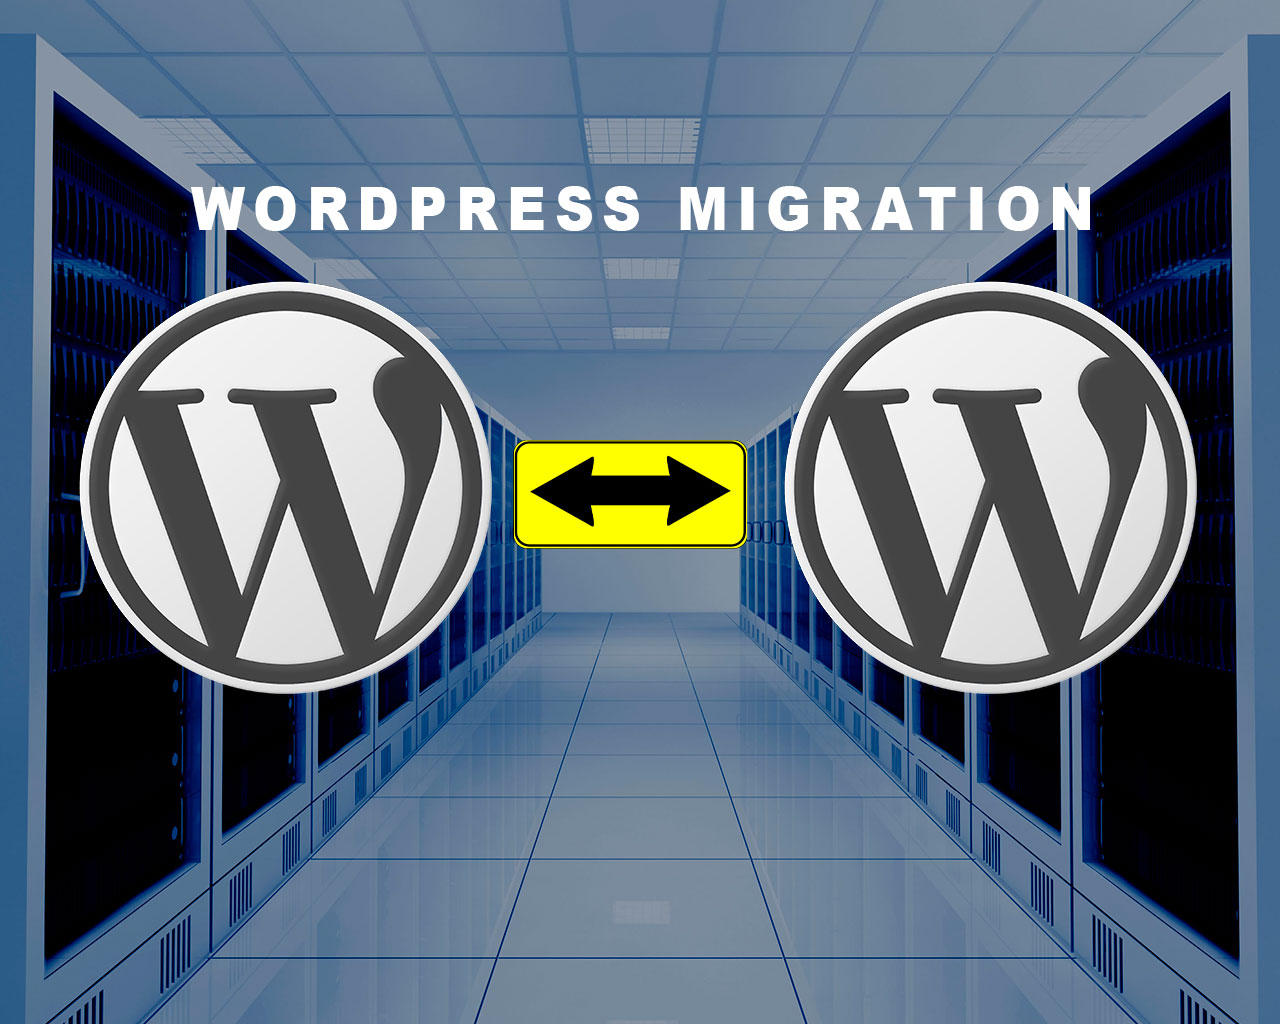 WordPress Migration Service by allspy - 71199